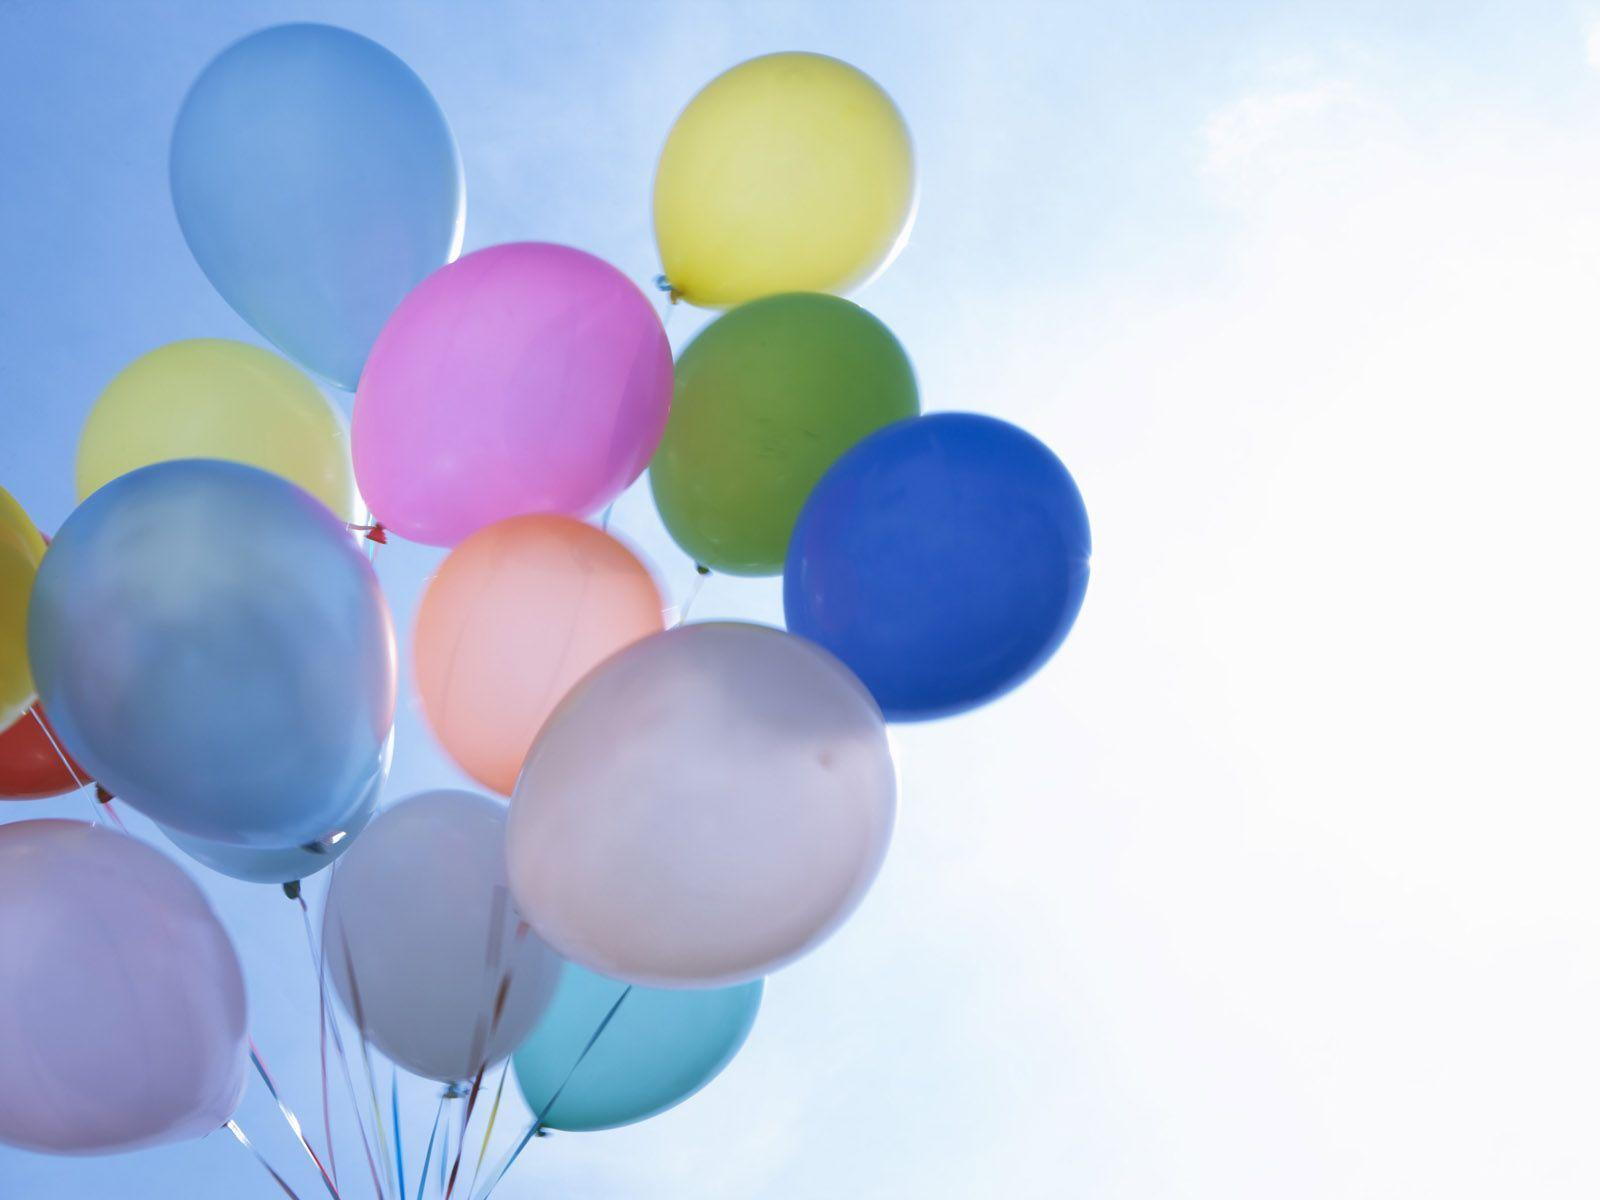 Birthday Balloons Wallpapers - HD Wallpapers Inn